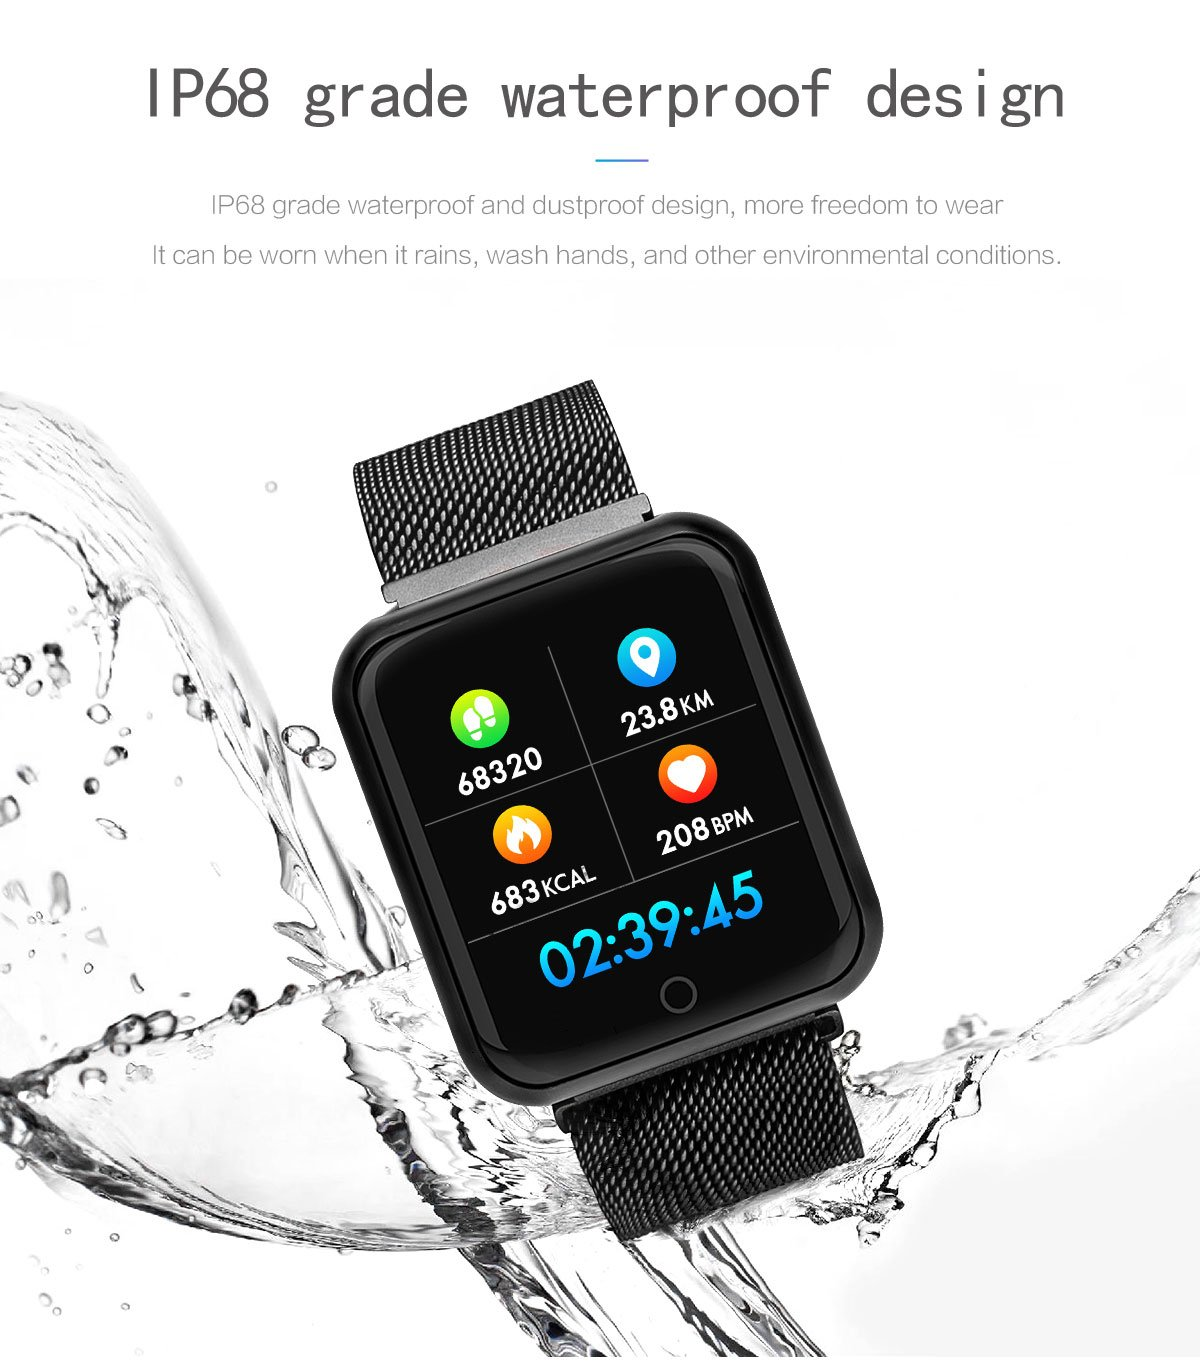 KingTo Activity Tracker Watch Waterproof with Heart Rate Monitor and Blood Pressure Monitor Fitness Tracker Watch Women and Men for Android and iOS Smartphone by KingTo (Image #6)